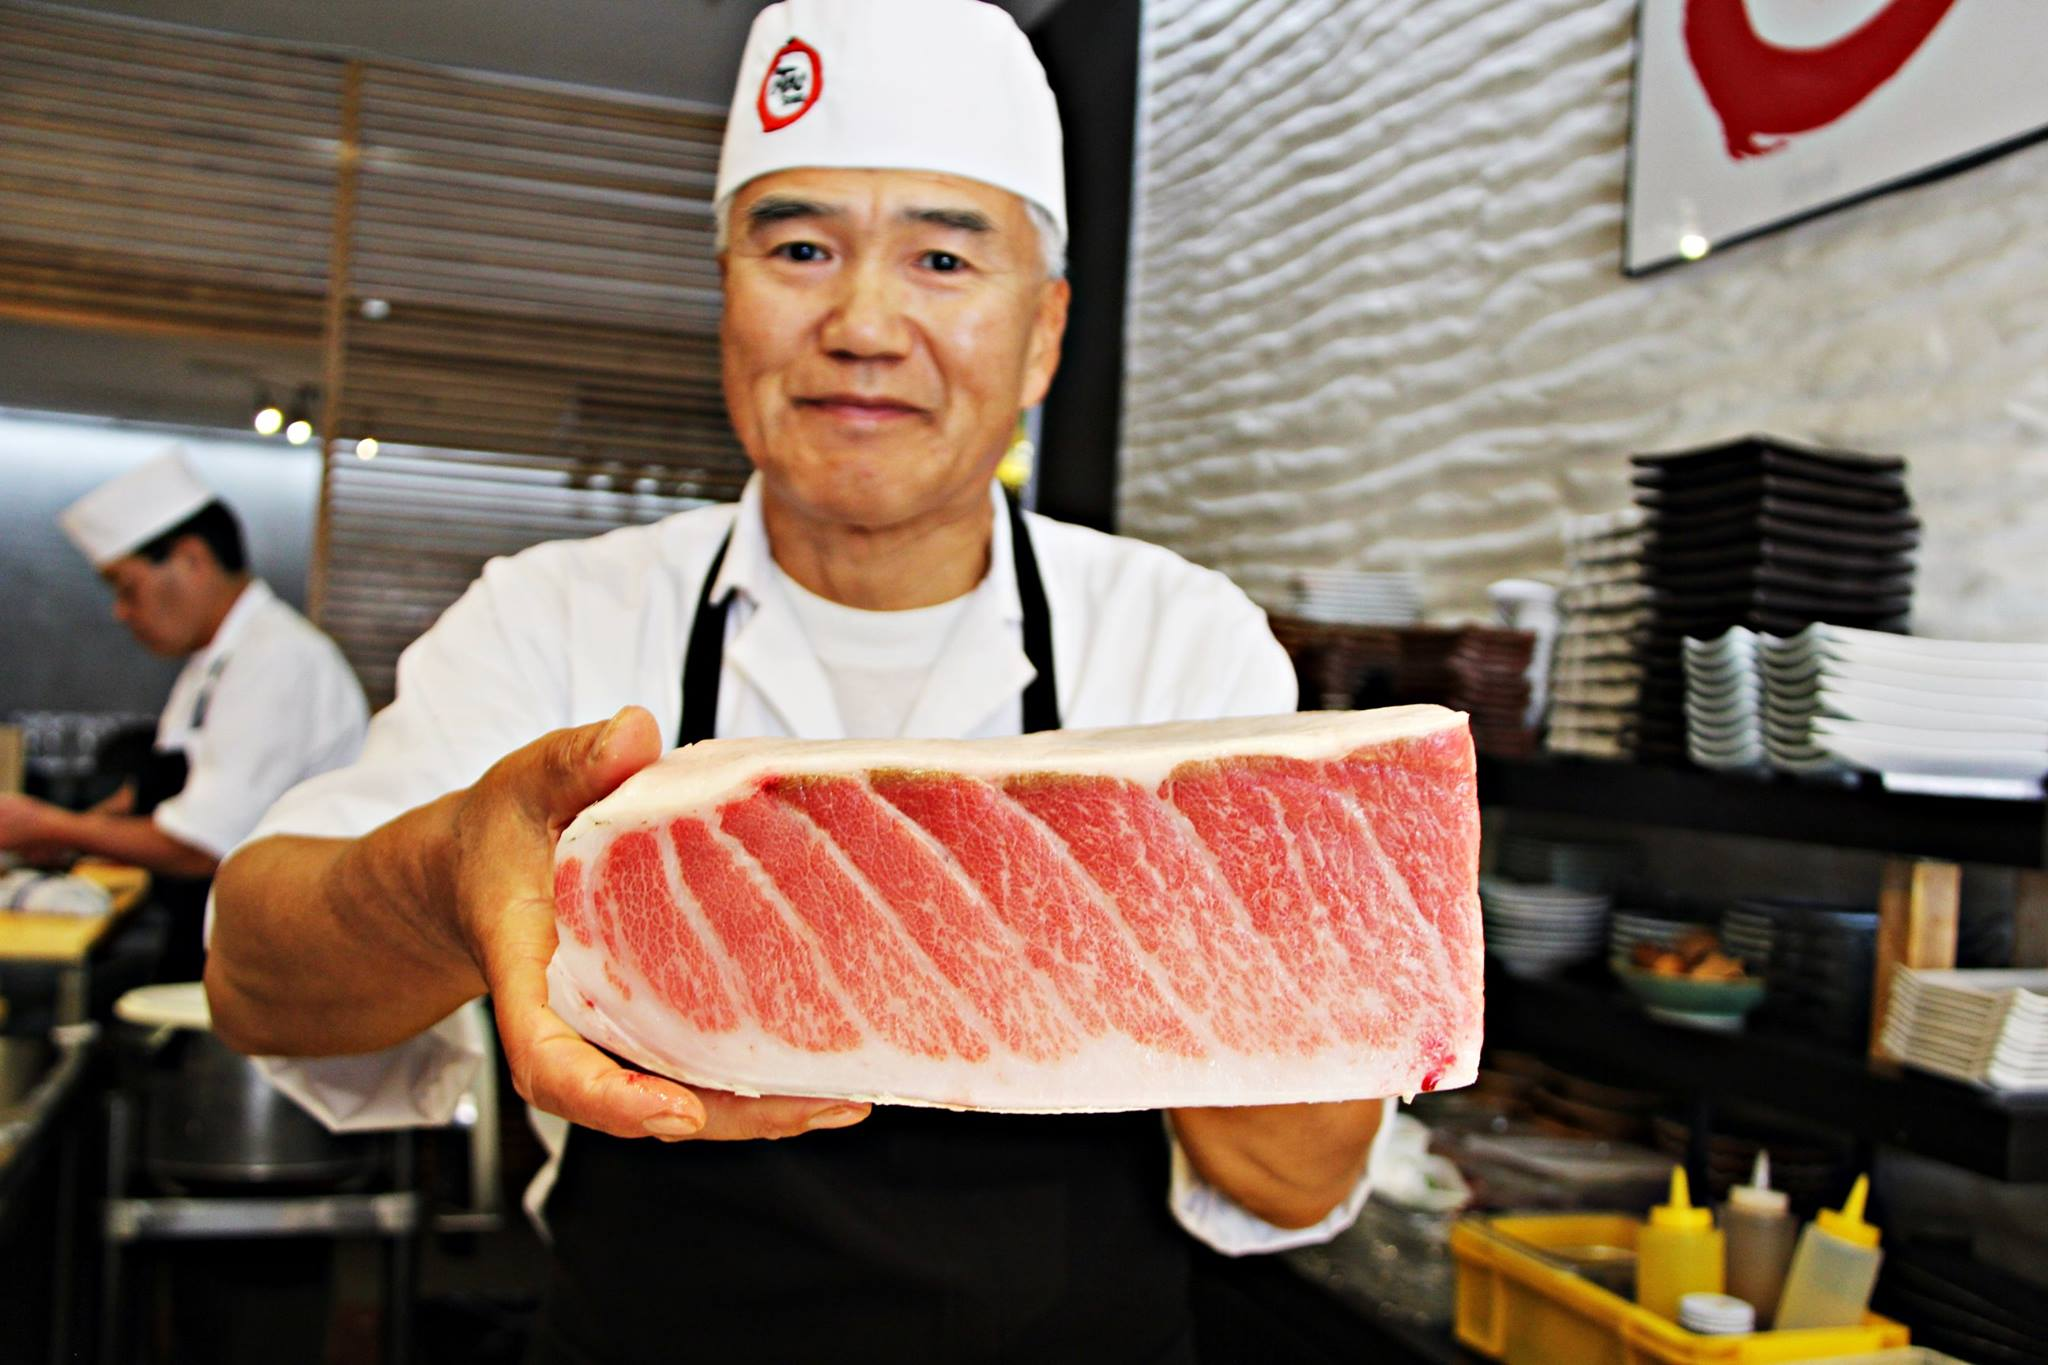 Chef Kurt Chen shows off a prized cut | photo courtesy of OoToro